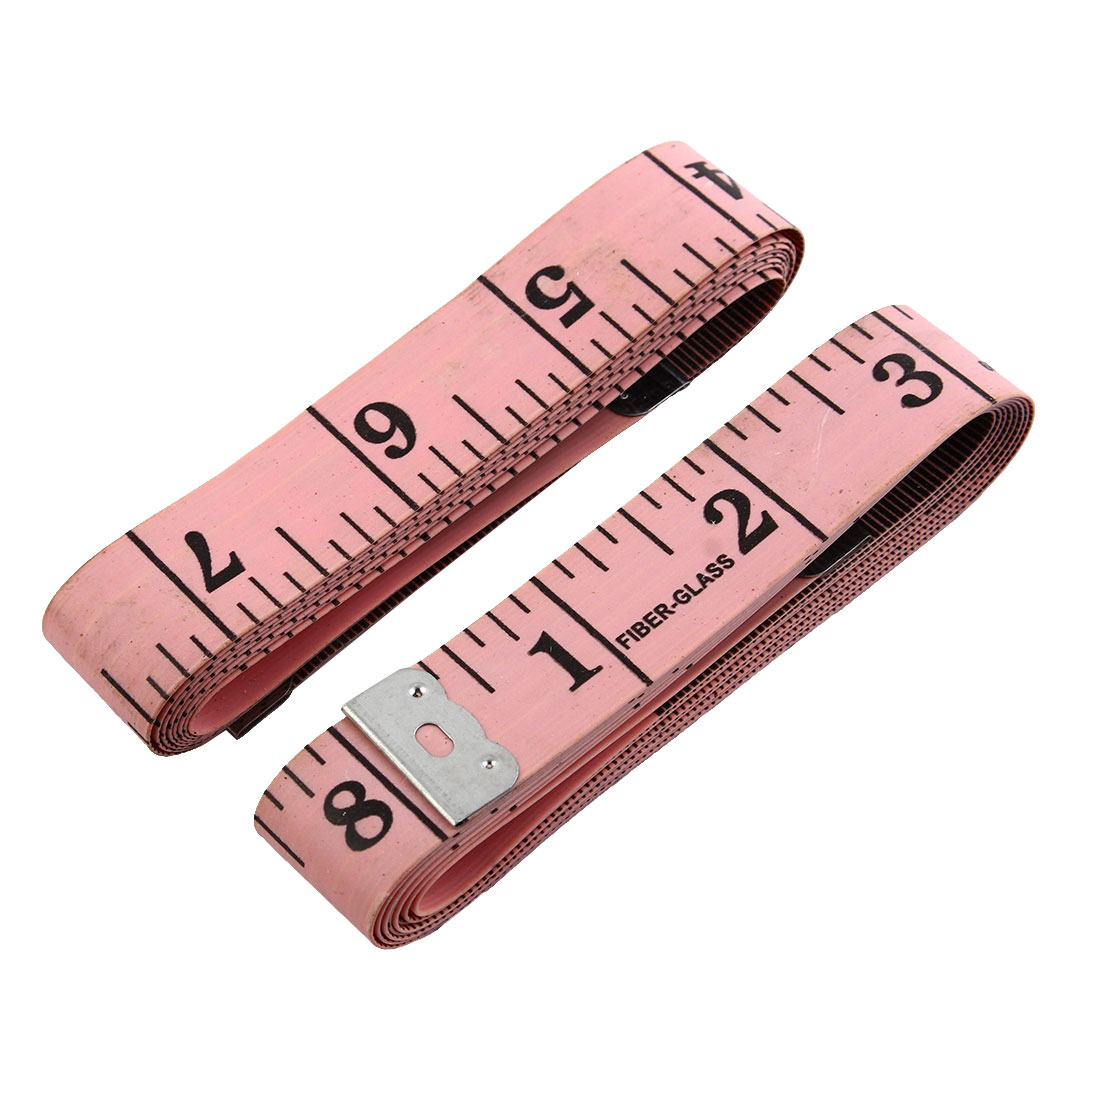 Unique Bargains Sewing Tailor Clothes Body Measure Tape Soft Ruler Pink 150cm Length 2pcs